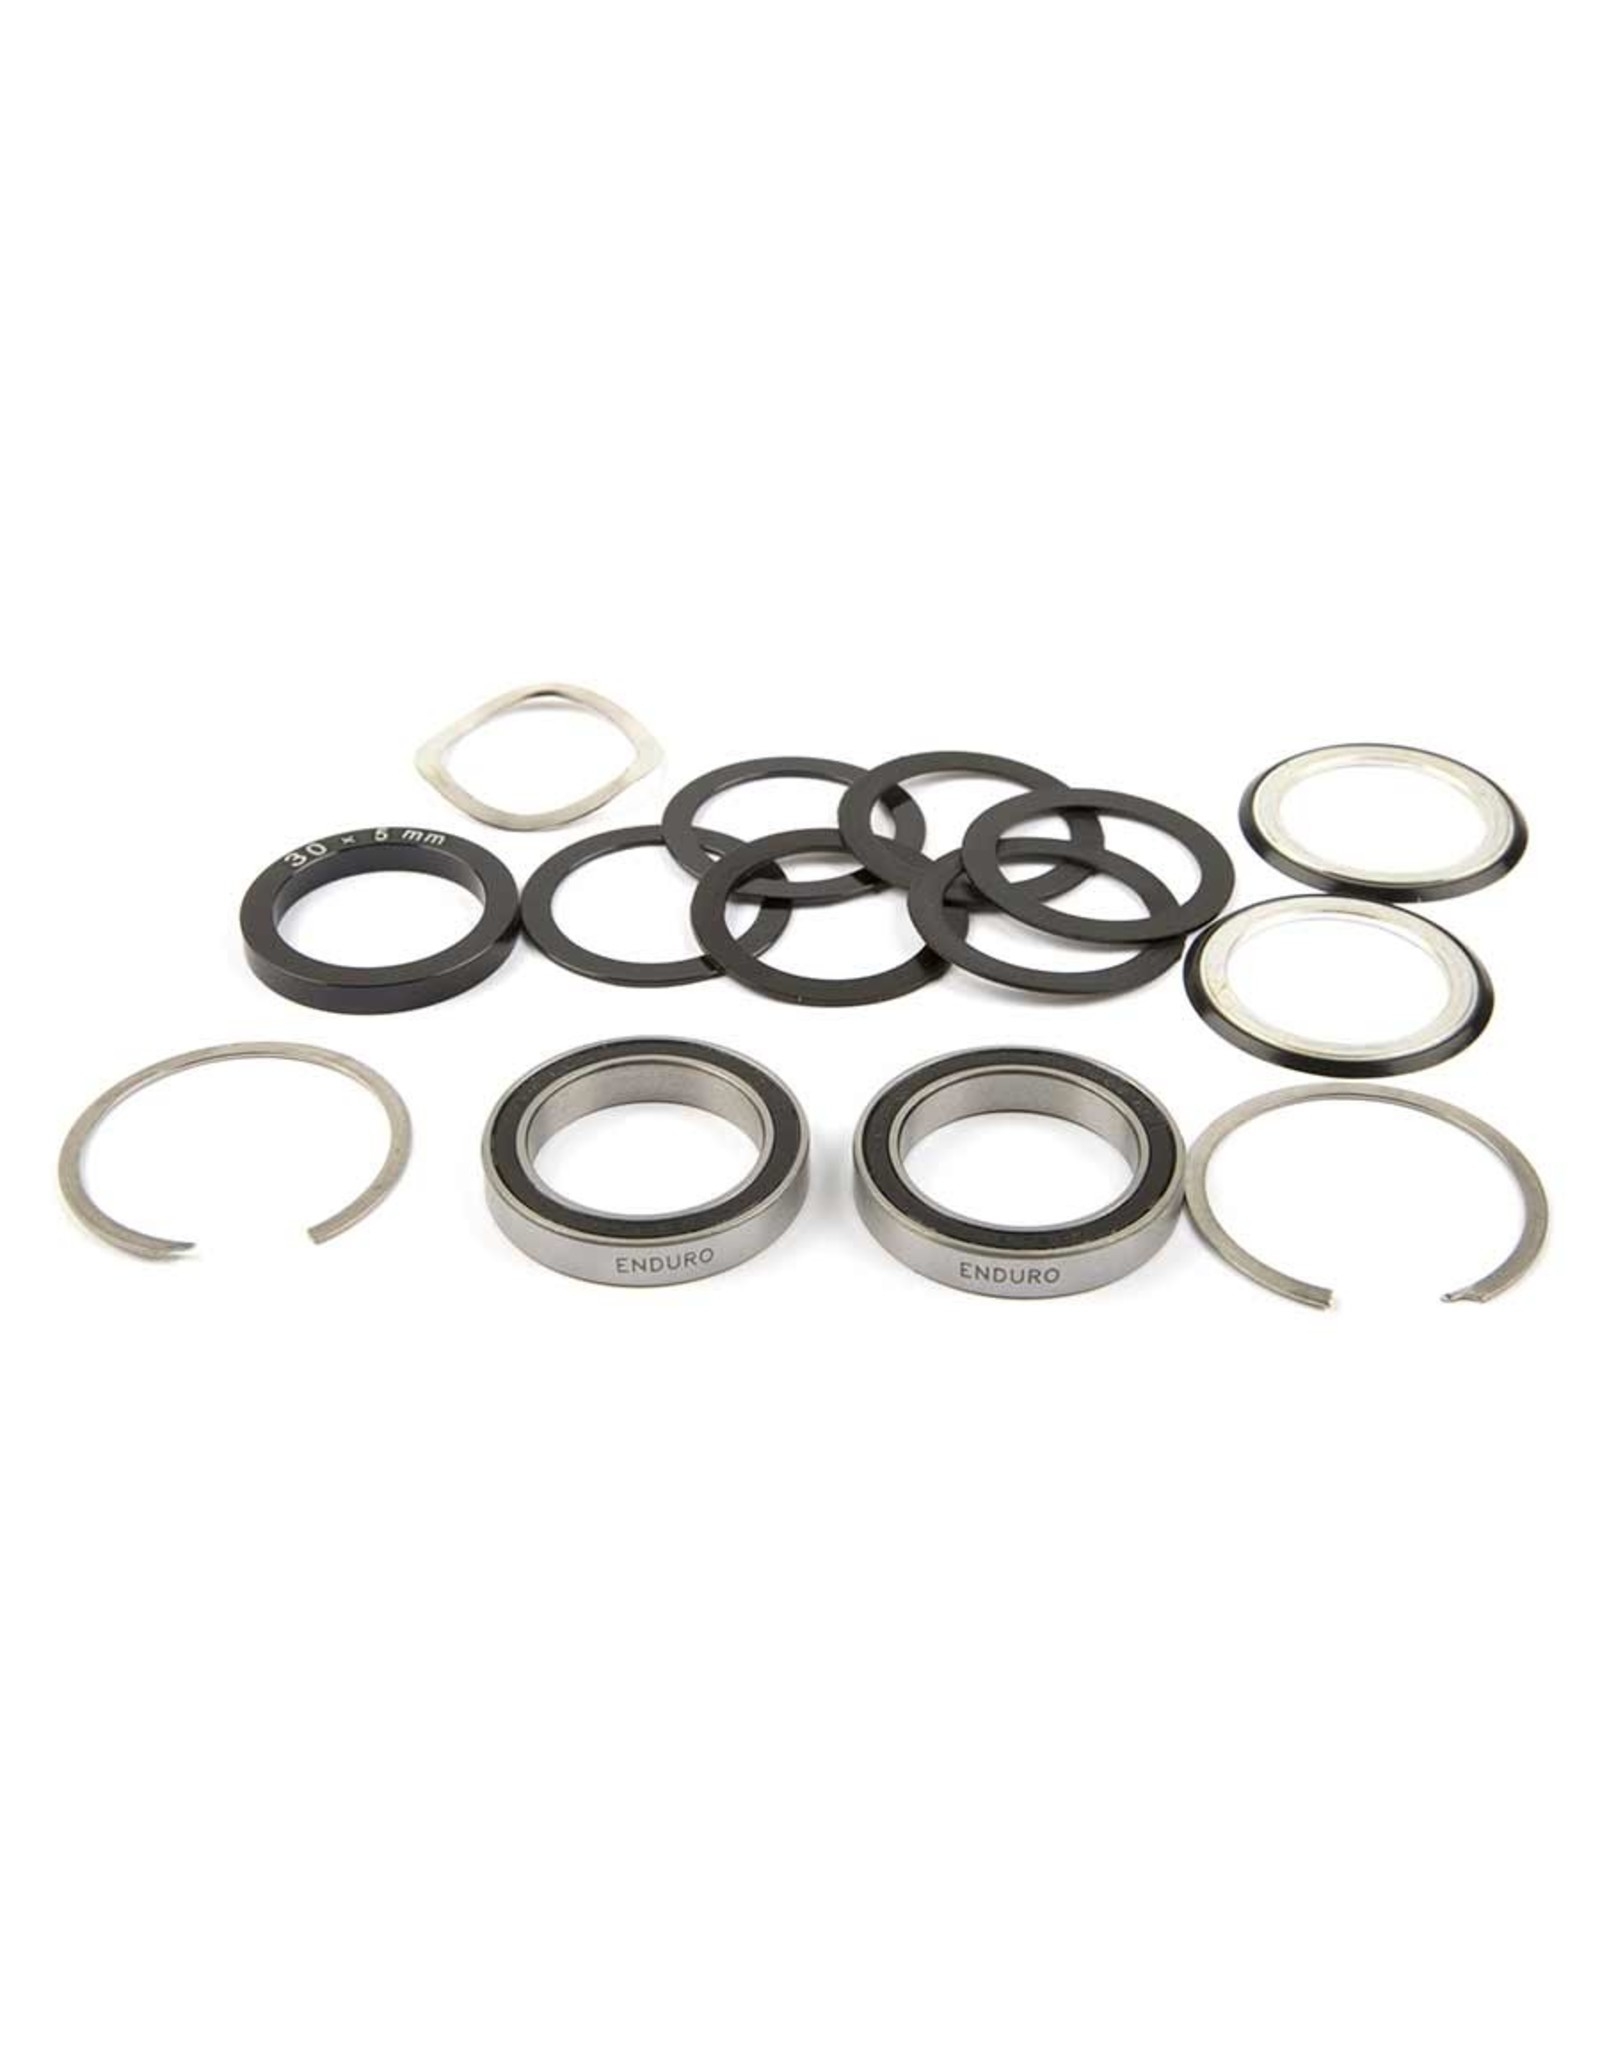 Enduro, Standard, Steel bearing kit, BB30, With seals and washers